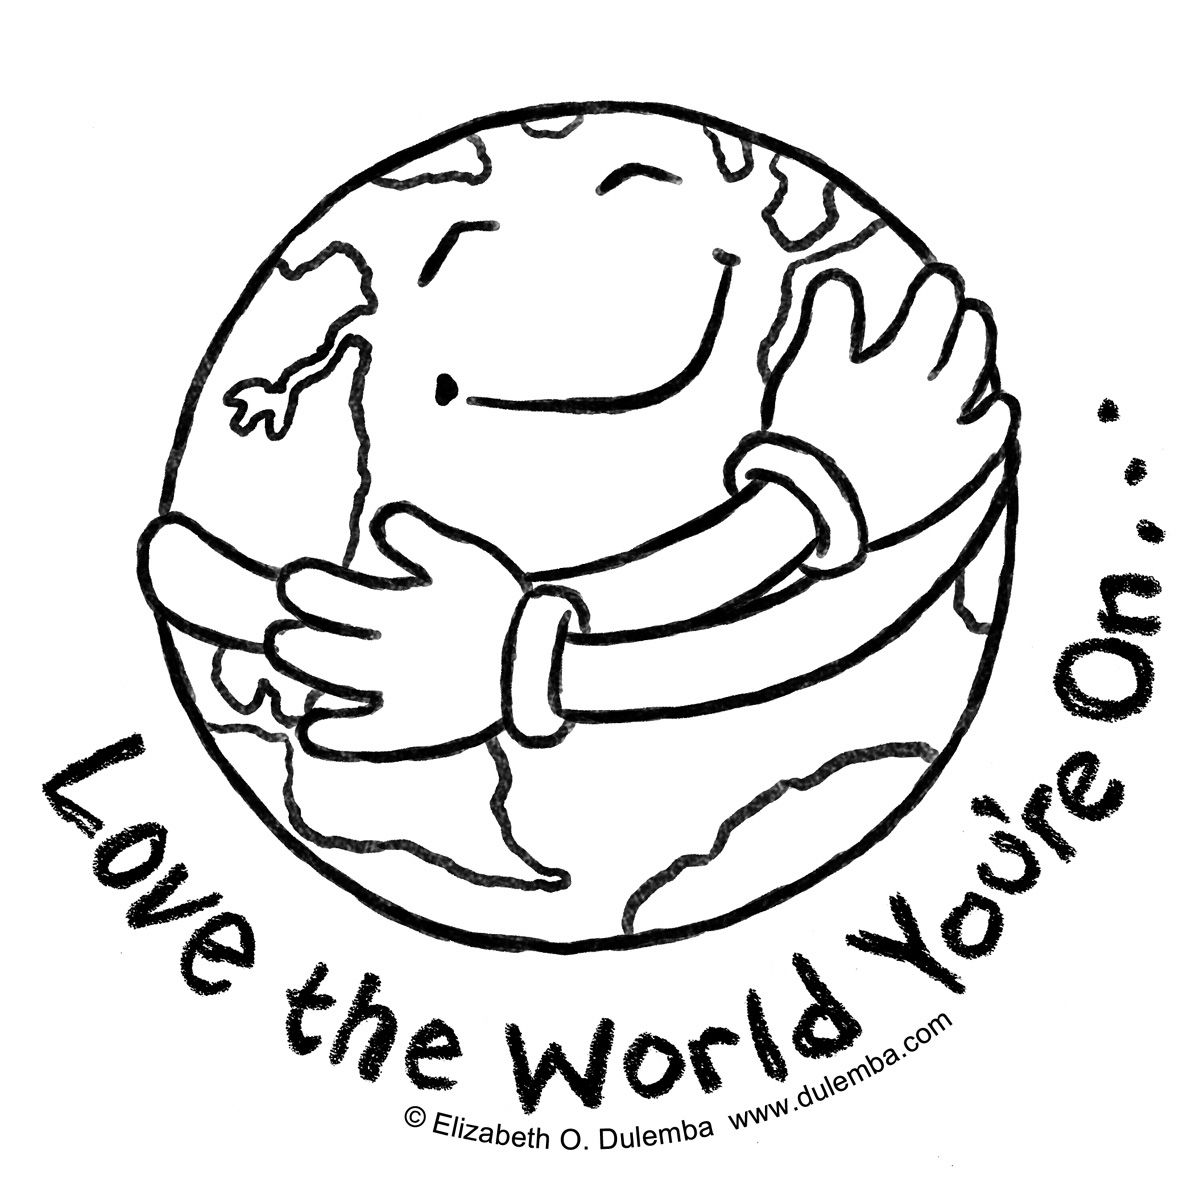 Earth Coloring Pages Coloring Pages For Kids Kids Coloring Pages Printable Earth Day Coloring Pages Earth Coloring Pages Coloring Pages